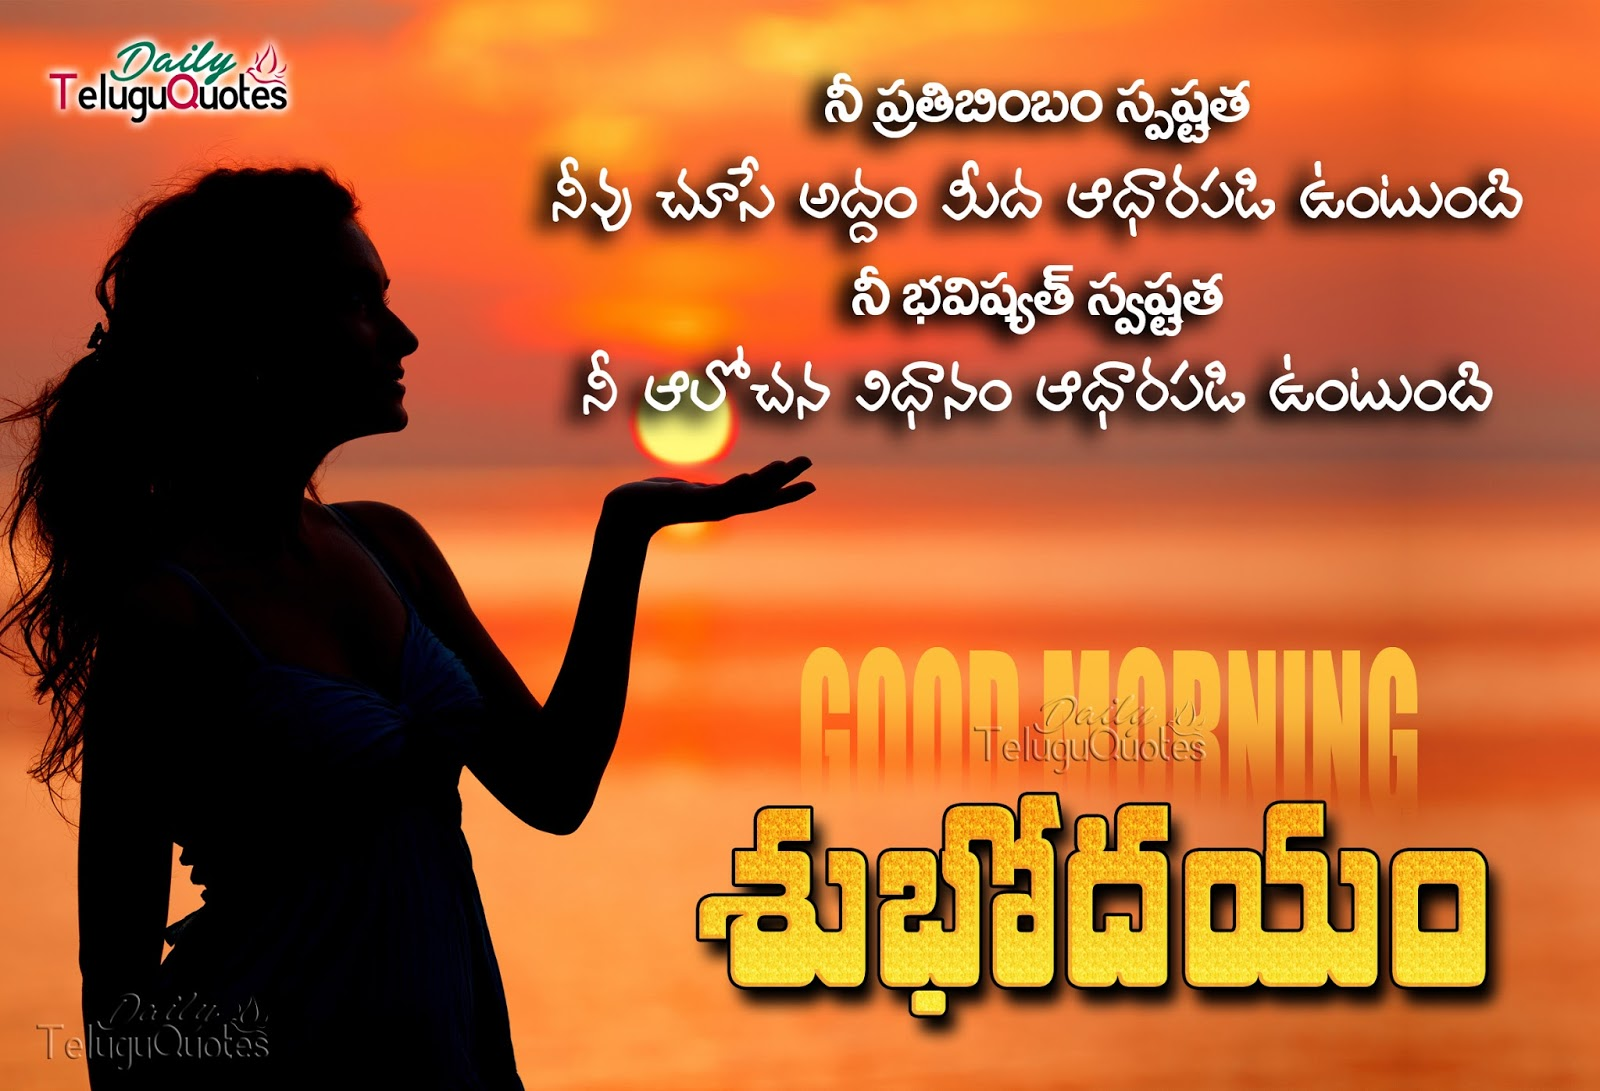 Famous good morning life quotes and greetings about future life good morning telugu life wishes quotes greetings photos m4hsunfo